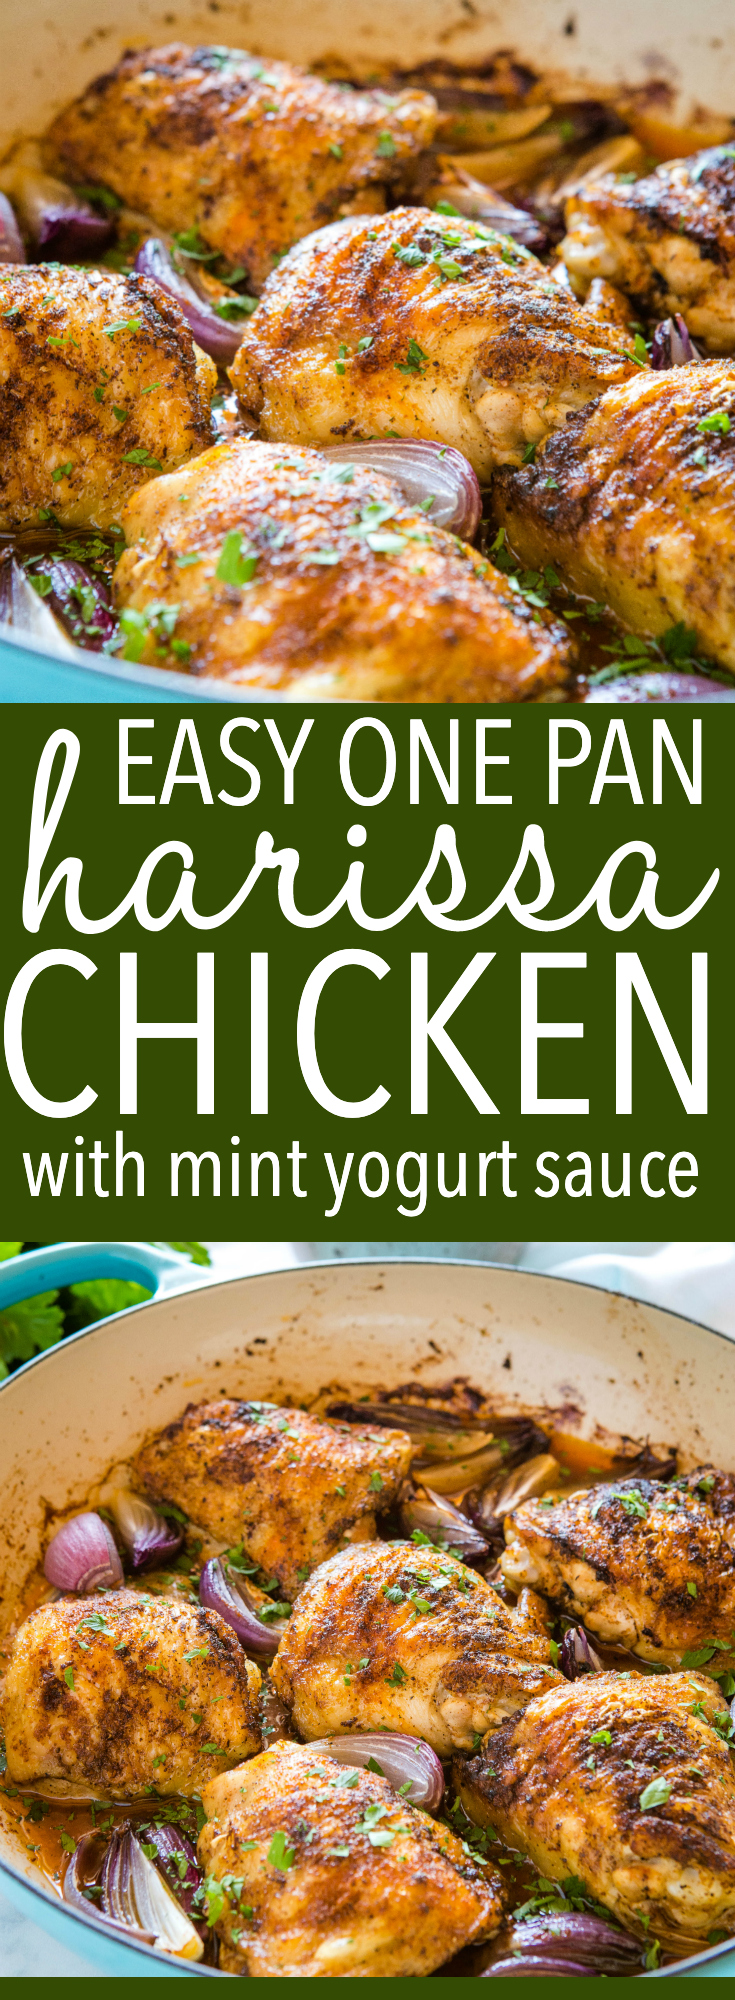 African Chicken Harissa with Mint Yogurt Sauce is a delicious main dish that's packed with flavour! Make this easy chicken recipe in under 30 minutes! Recipe from thebusybaker.ca! #harissa #chicken #mint #yogurt #africanchicken #spicy #middleeastern #familymeal #roastchicken via @busybakerblog